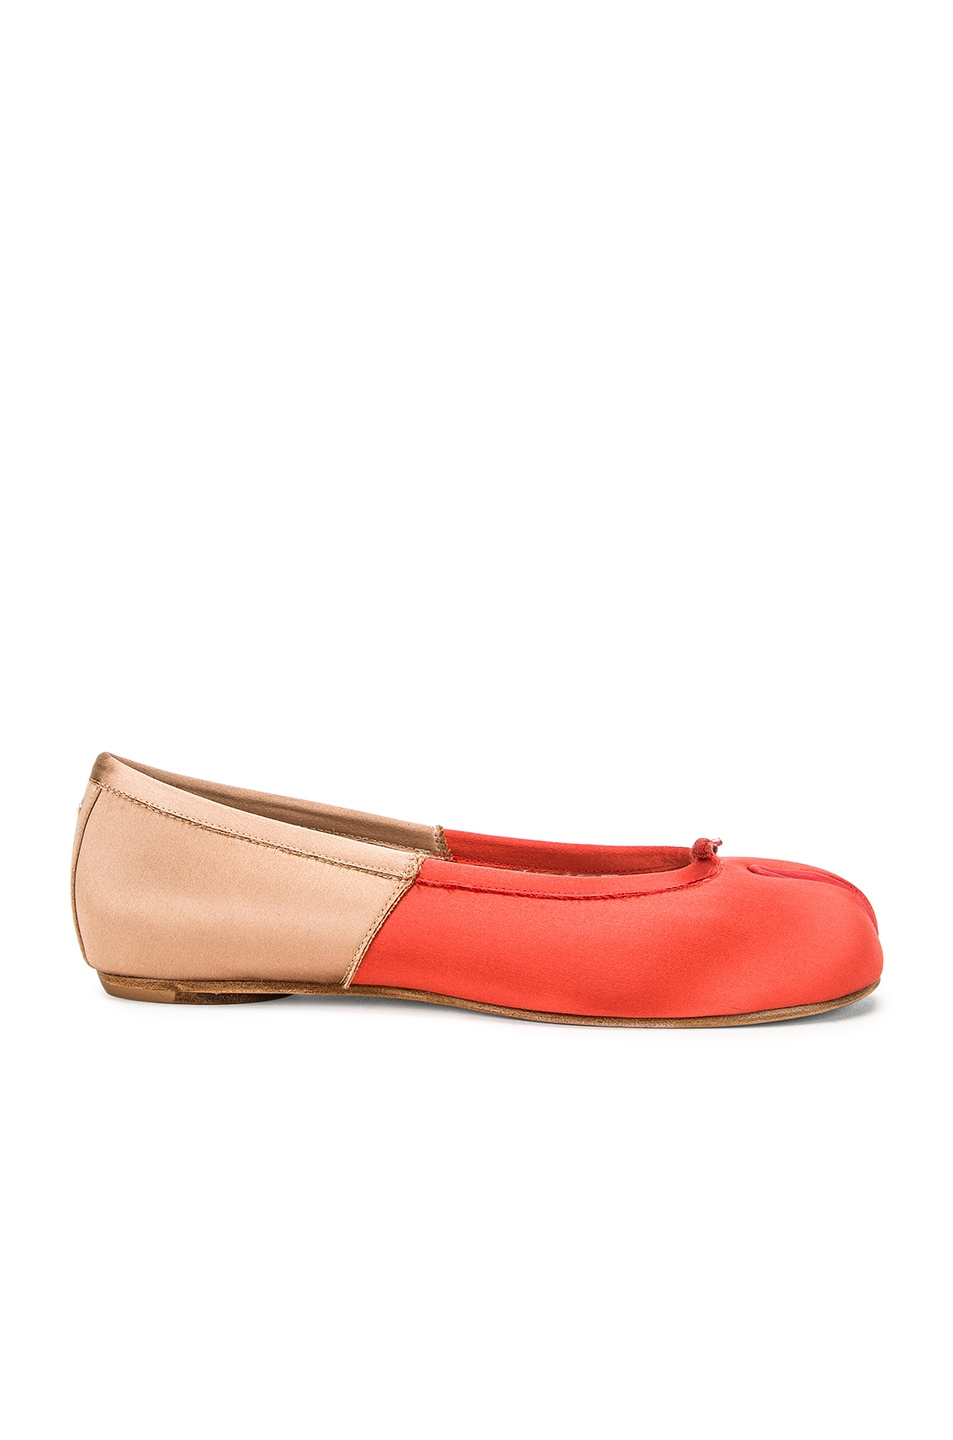 Image 1 of Maison Margiela Colorblock Ballerina Flat in Coral & Light Pink